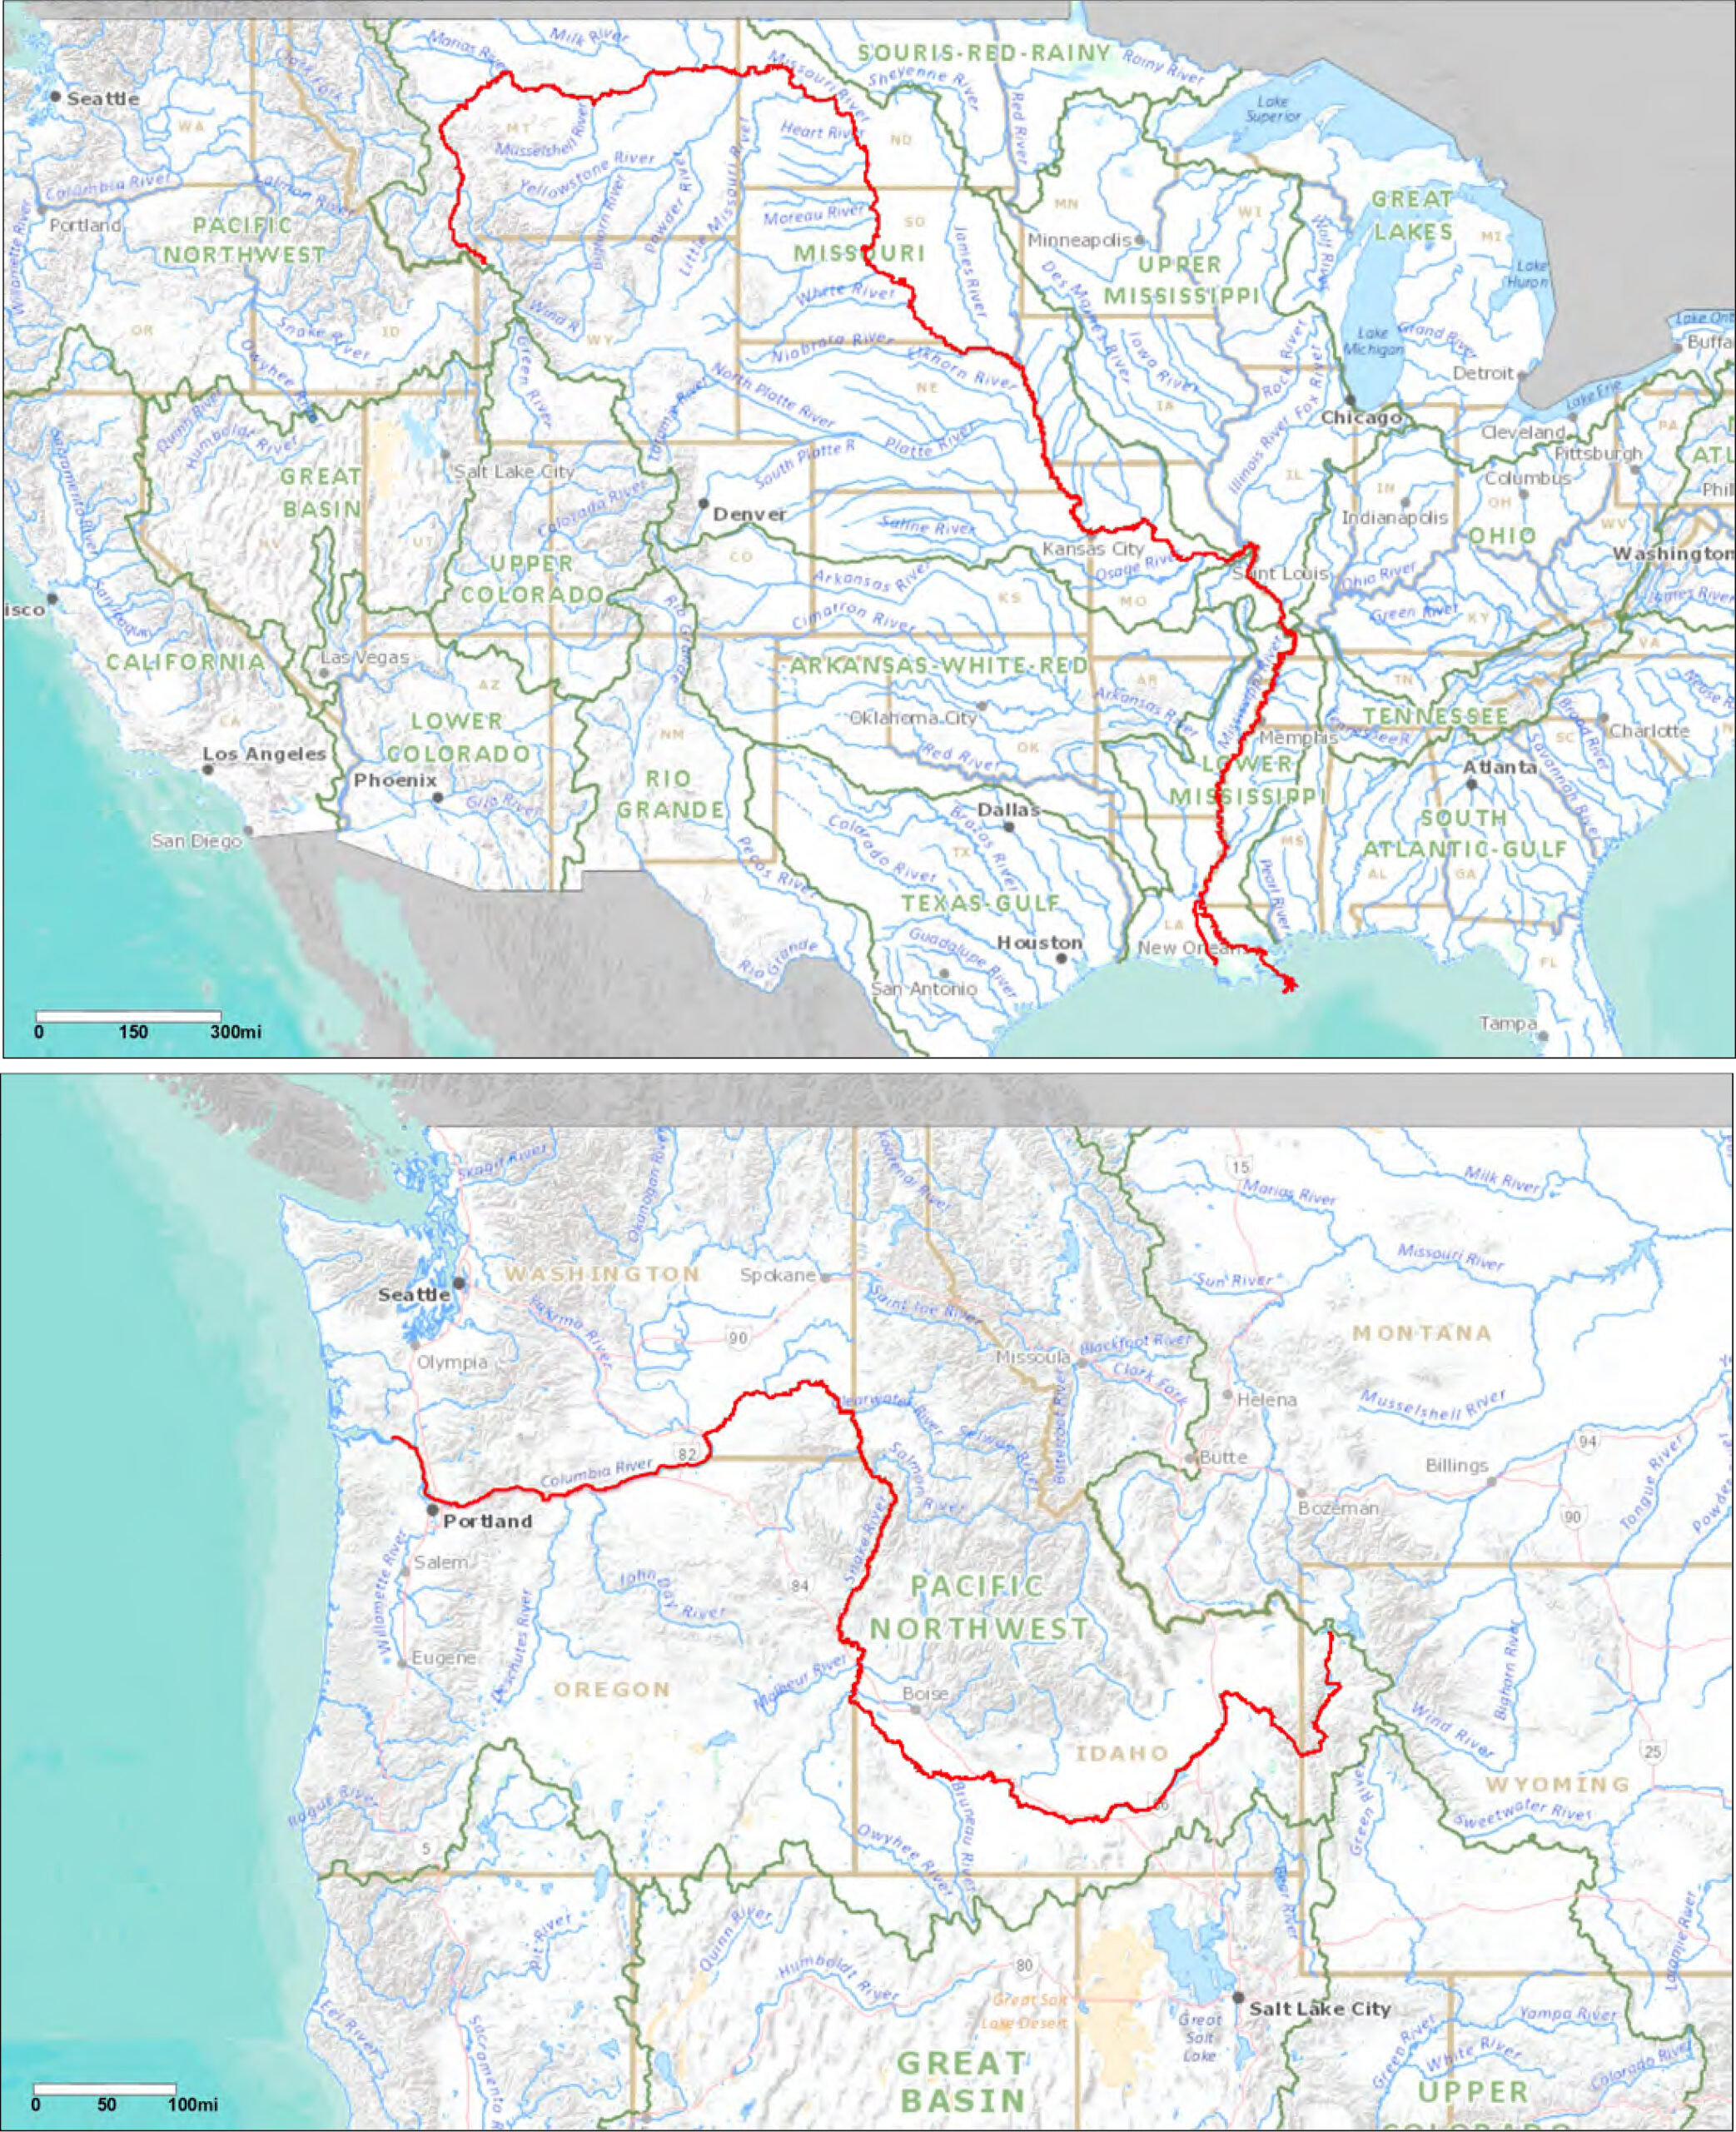 The long journey of water from Yellowstone geysers to the ocean